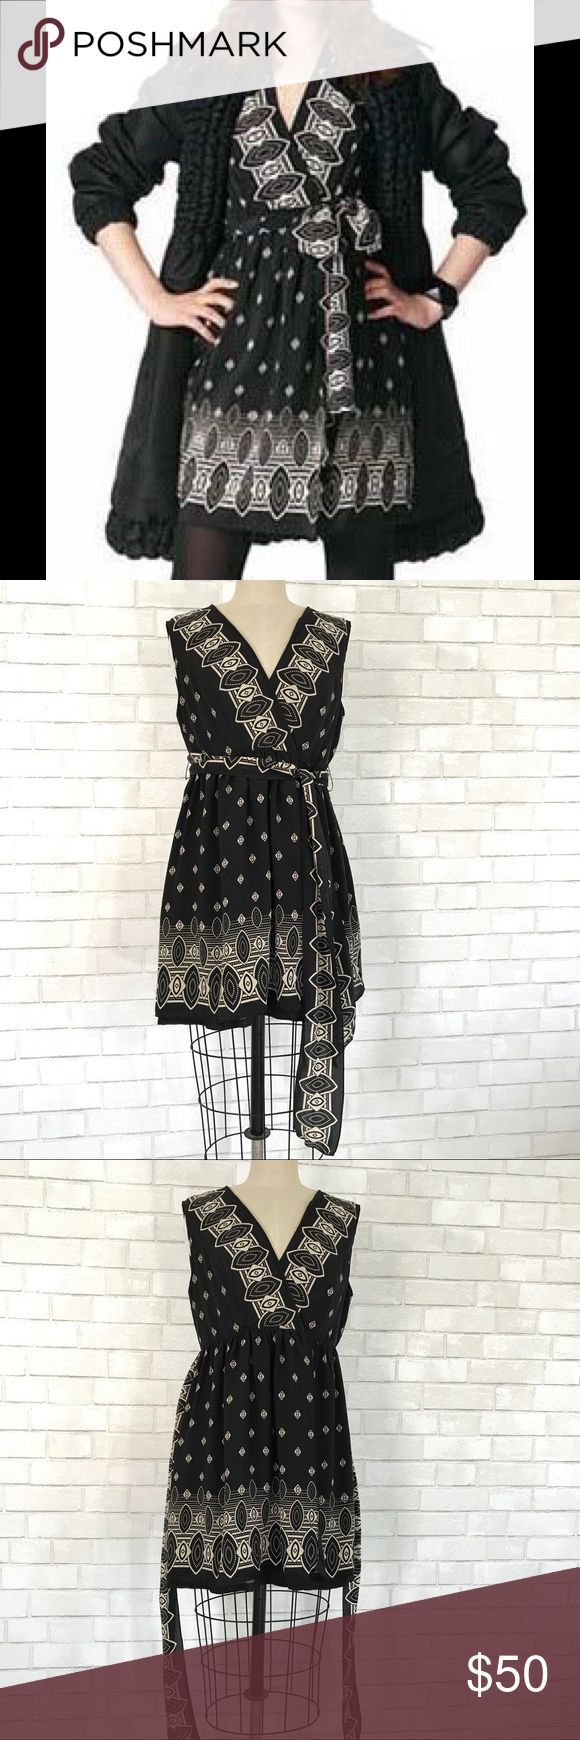 Silk Wrap Dress Anna Sui for Target Printed black silk wrap dress by Anna Sui for Target  Size L, 100% Silk full under lining 100% Polyester. Wrap dress, attached belt. V neck, sleeves, full skirt. New never worn no tag.   Ⓜ️Chest 38 Ⓜ️Waist 32 Ⓜ️heel Skirt 19 Ⓜ️Length 34  ✅Bundle and save  ✅🚭 🚫No Trading 🙅🏻 Poshmark rules only‼️ Anna Sui Dresses